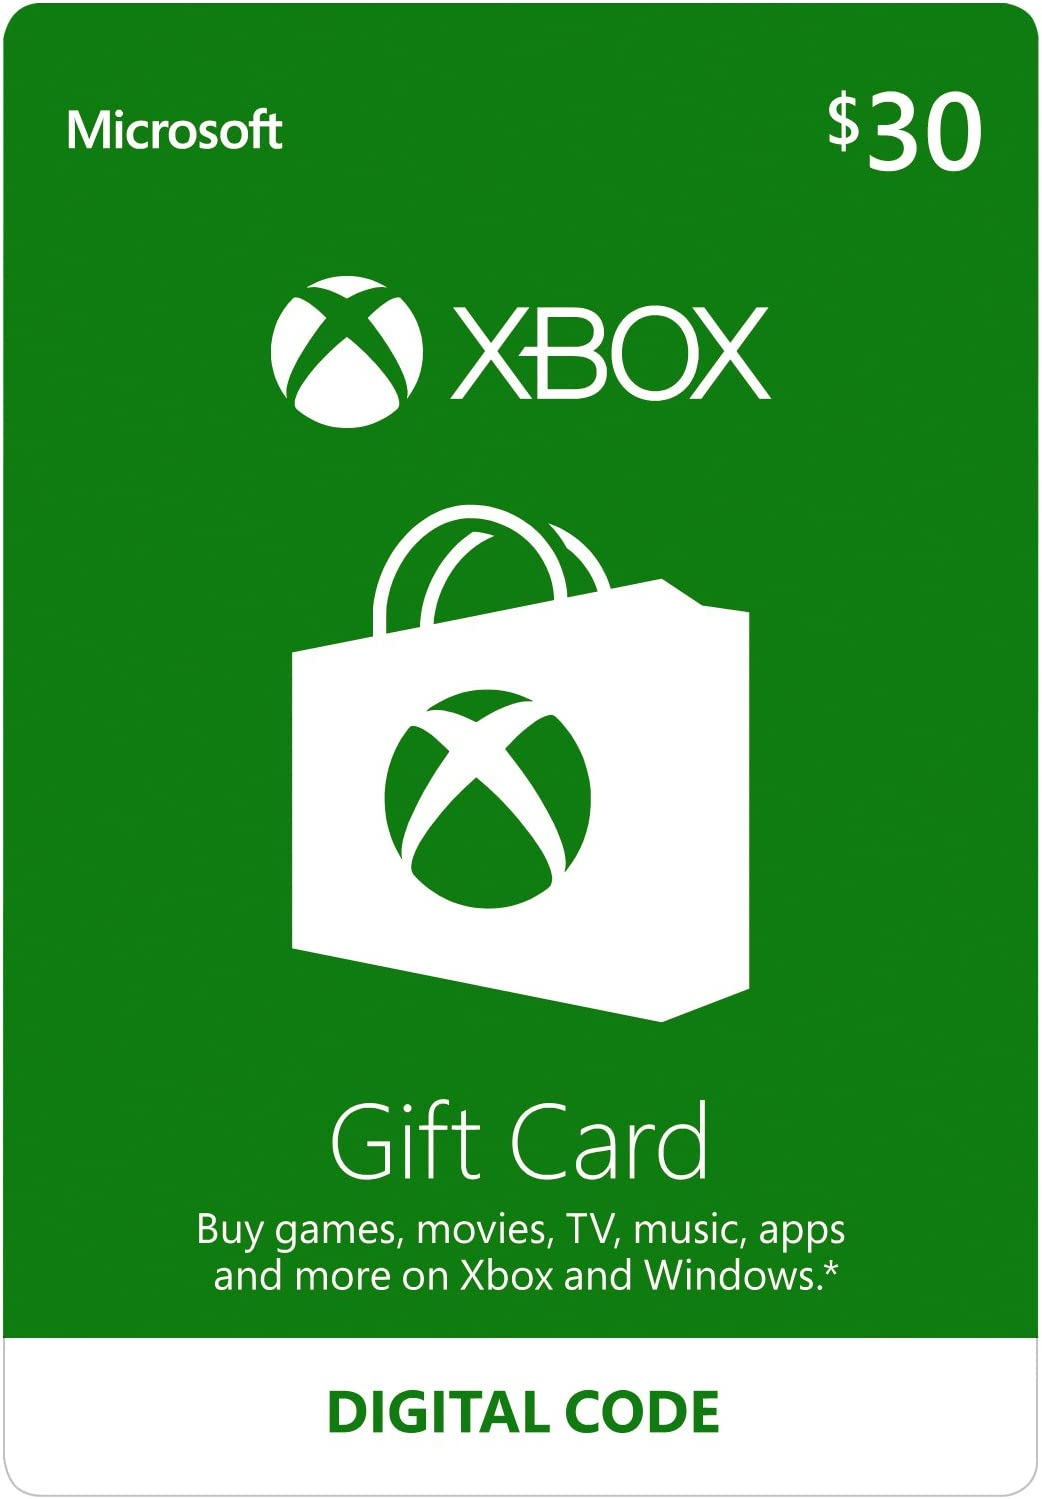 Amazon.com: $20 Xbox Gift Card - [Digital Code]: Video Games